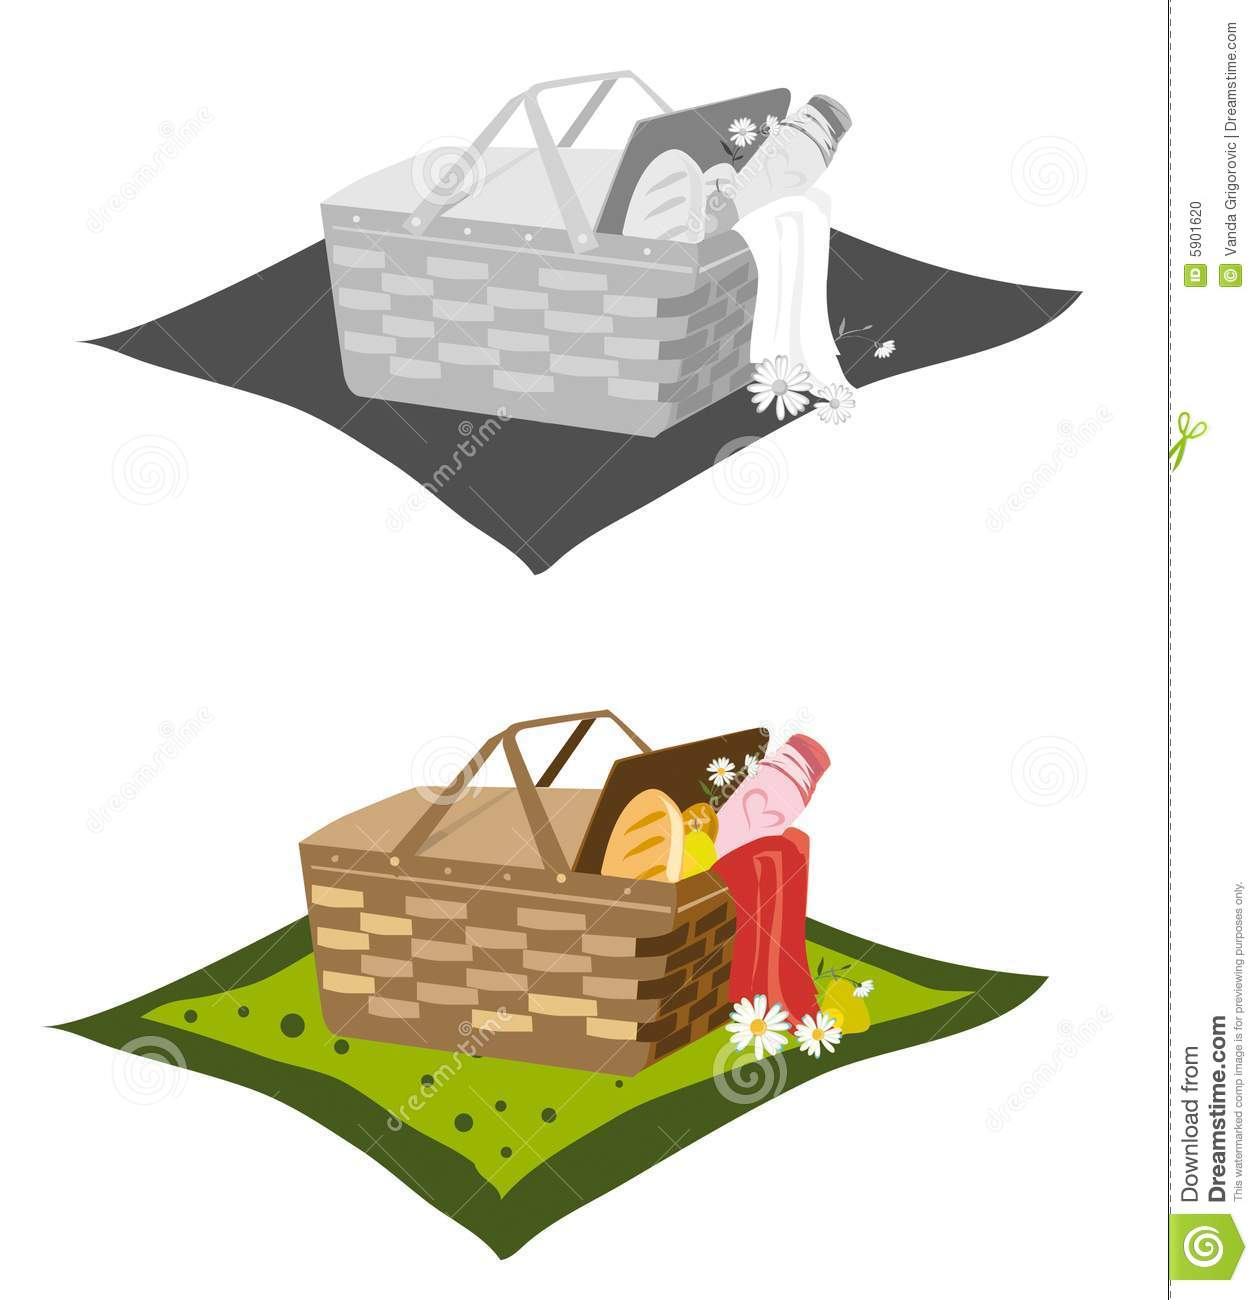 Picnic Blanket Clipart Black And White Picnic Basket And Blanket